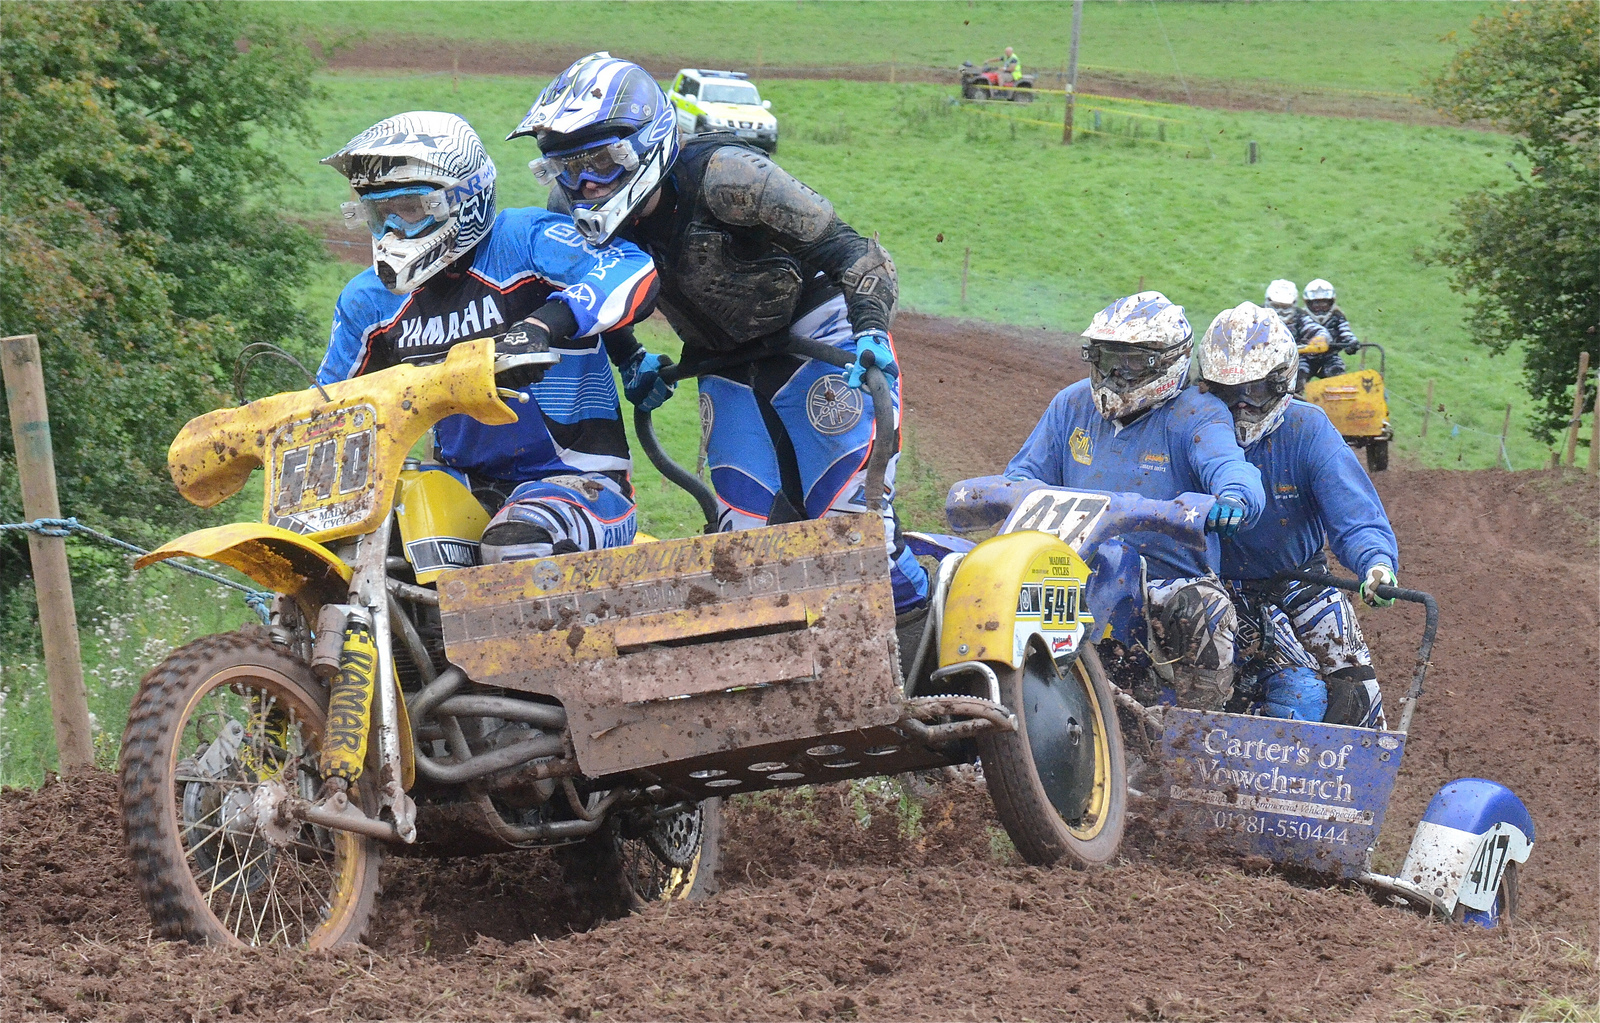 Llanthony Classic Scramble Photos September 2015 classicdirtbikerider.com..52